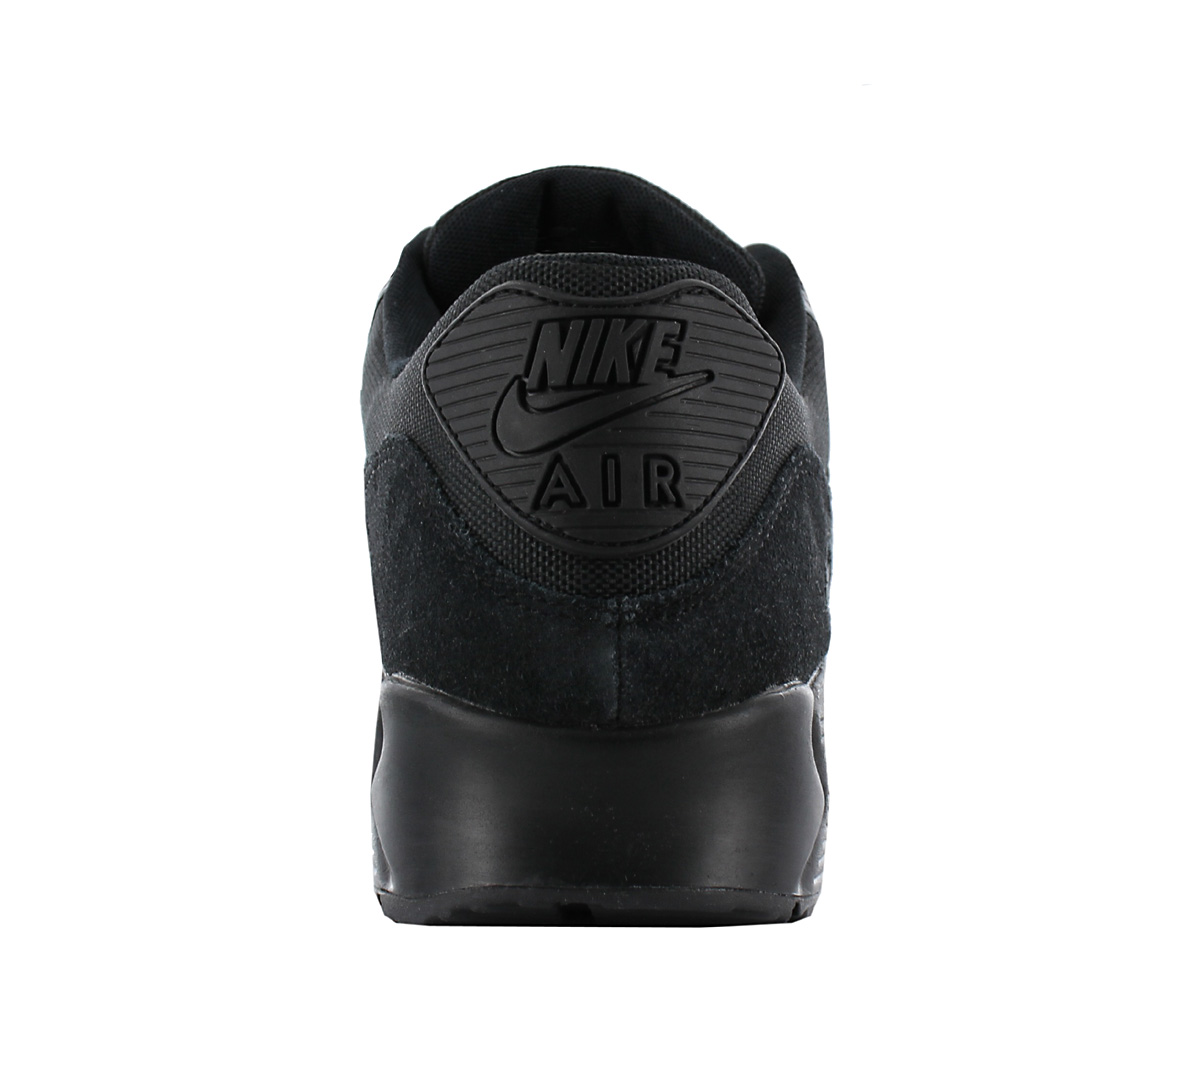 outlet store 33f63 8fba2 Nike Air Max 90 Leather Premium Men s Shoes Sneakers Black 700155 ...